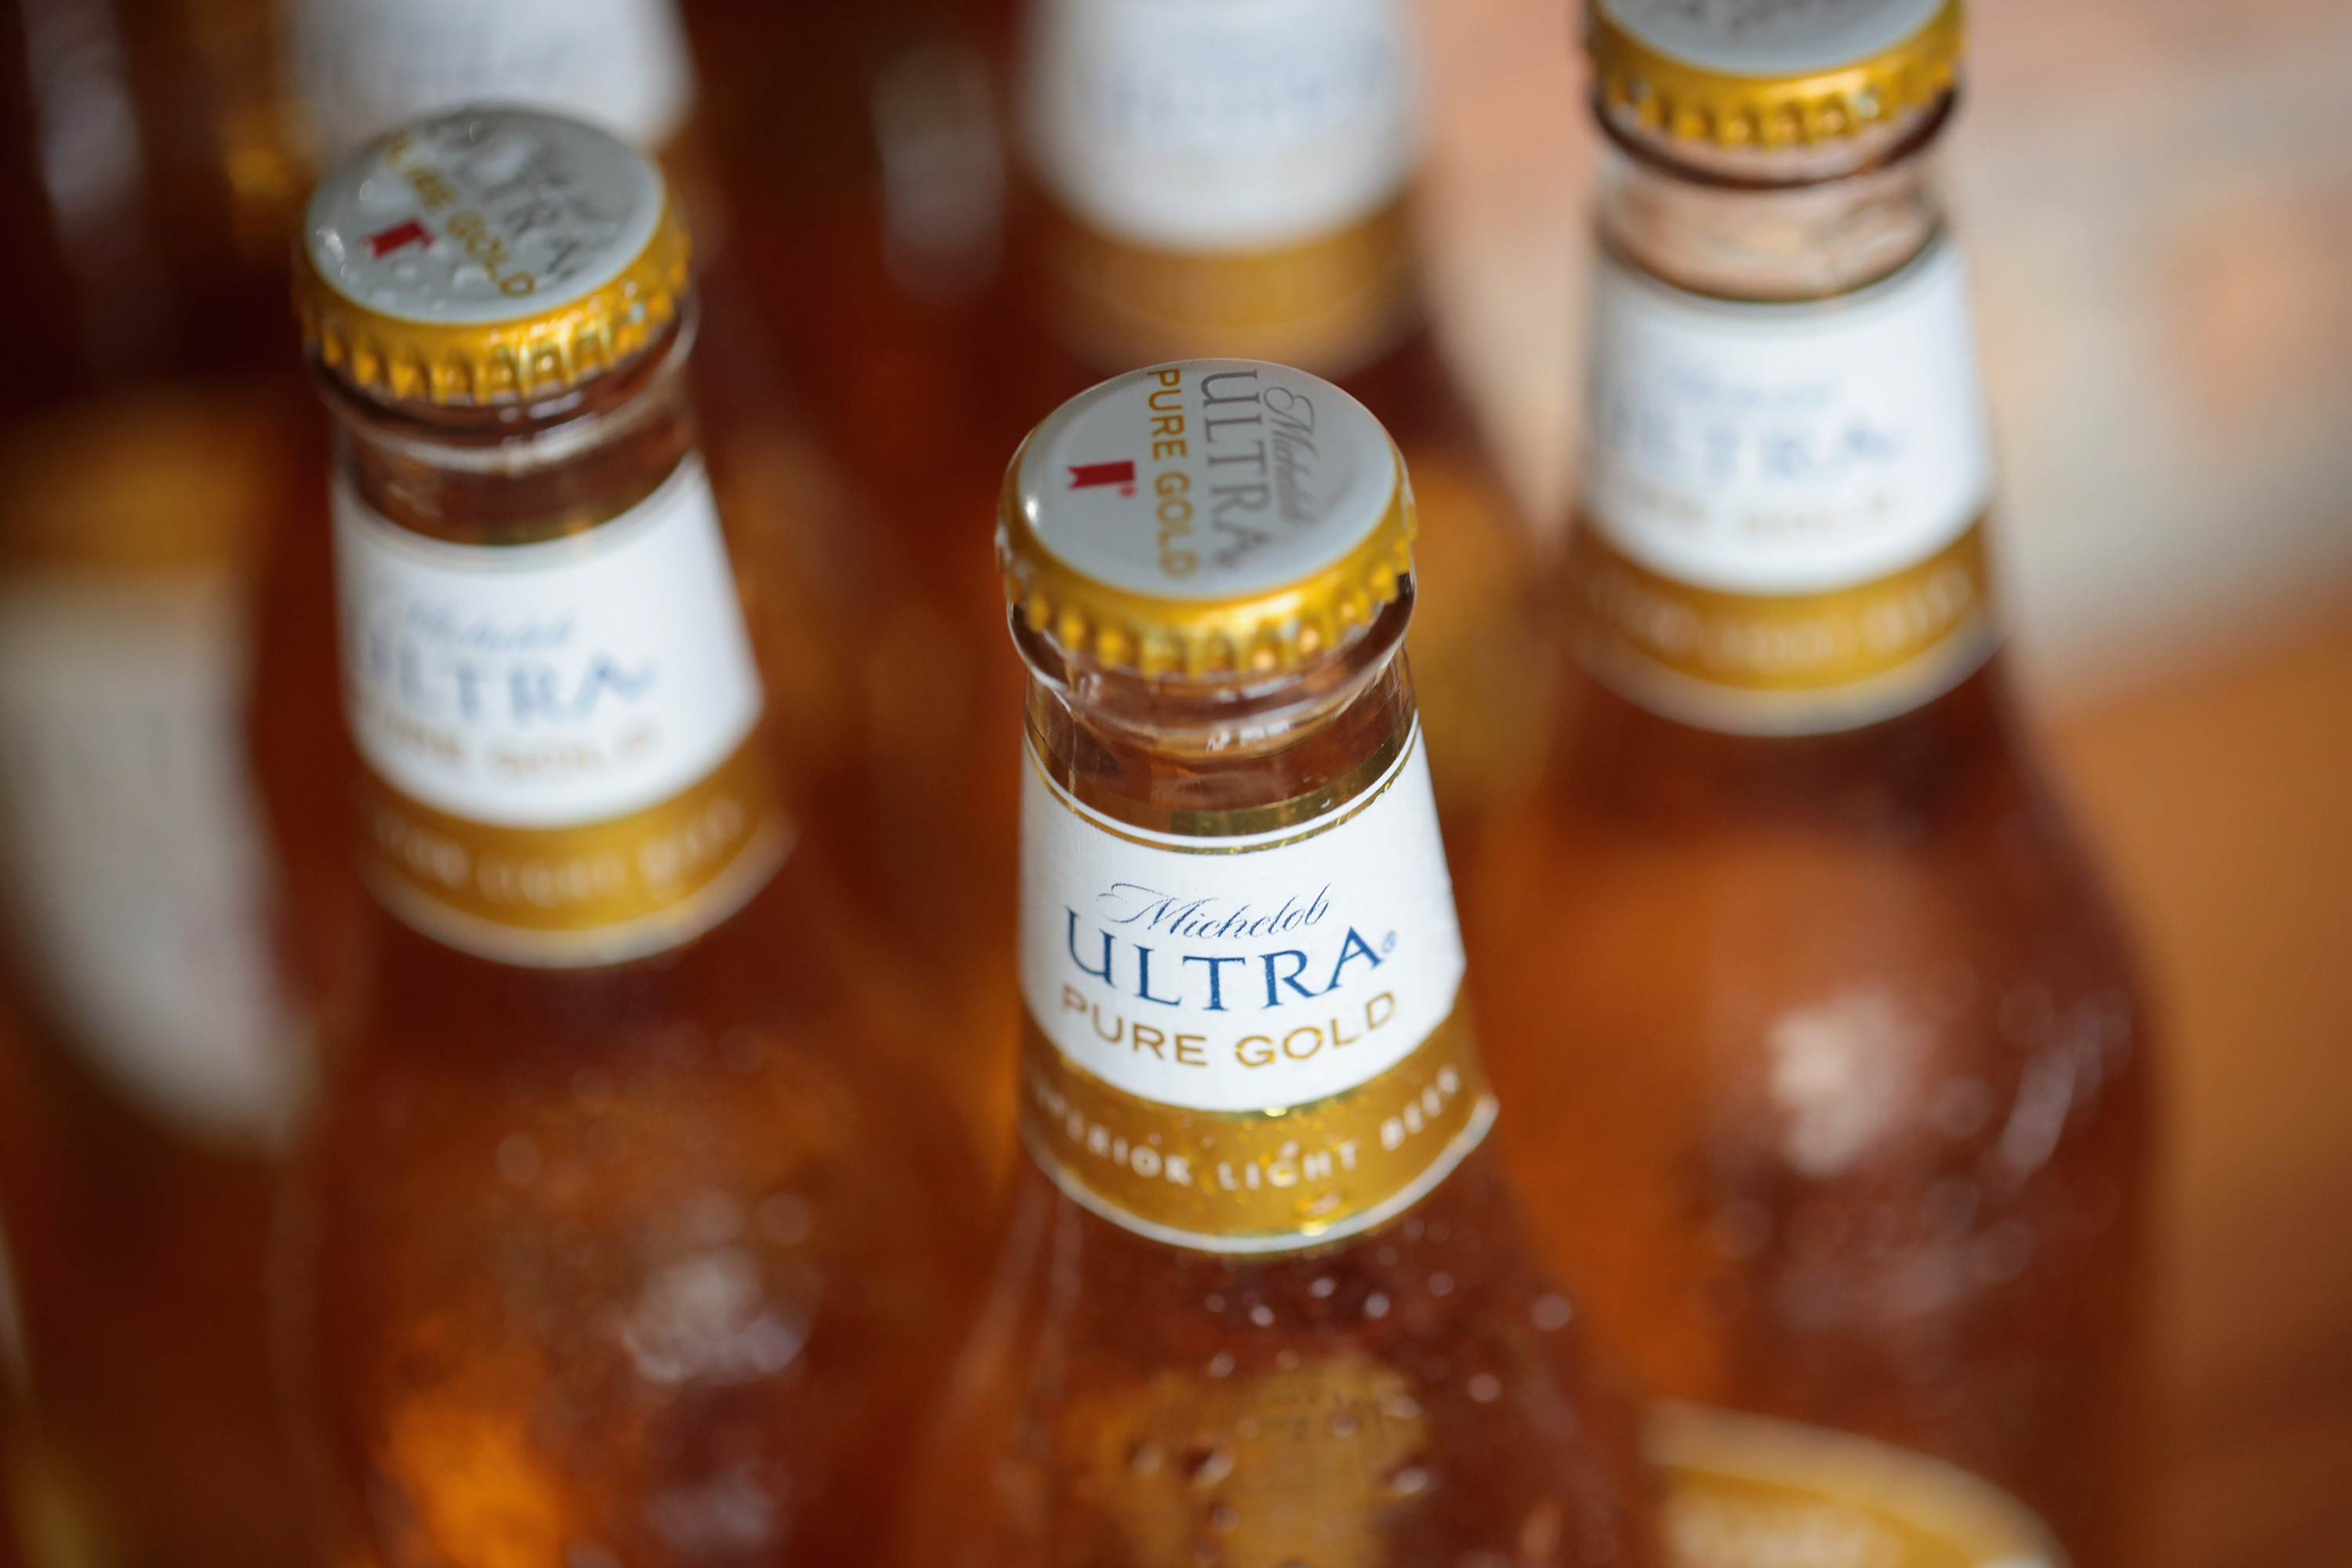 Anheuser-Busch InBev Launches Organic Michelob Ultra Pure Gold Beer